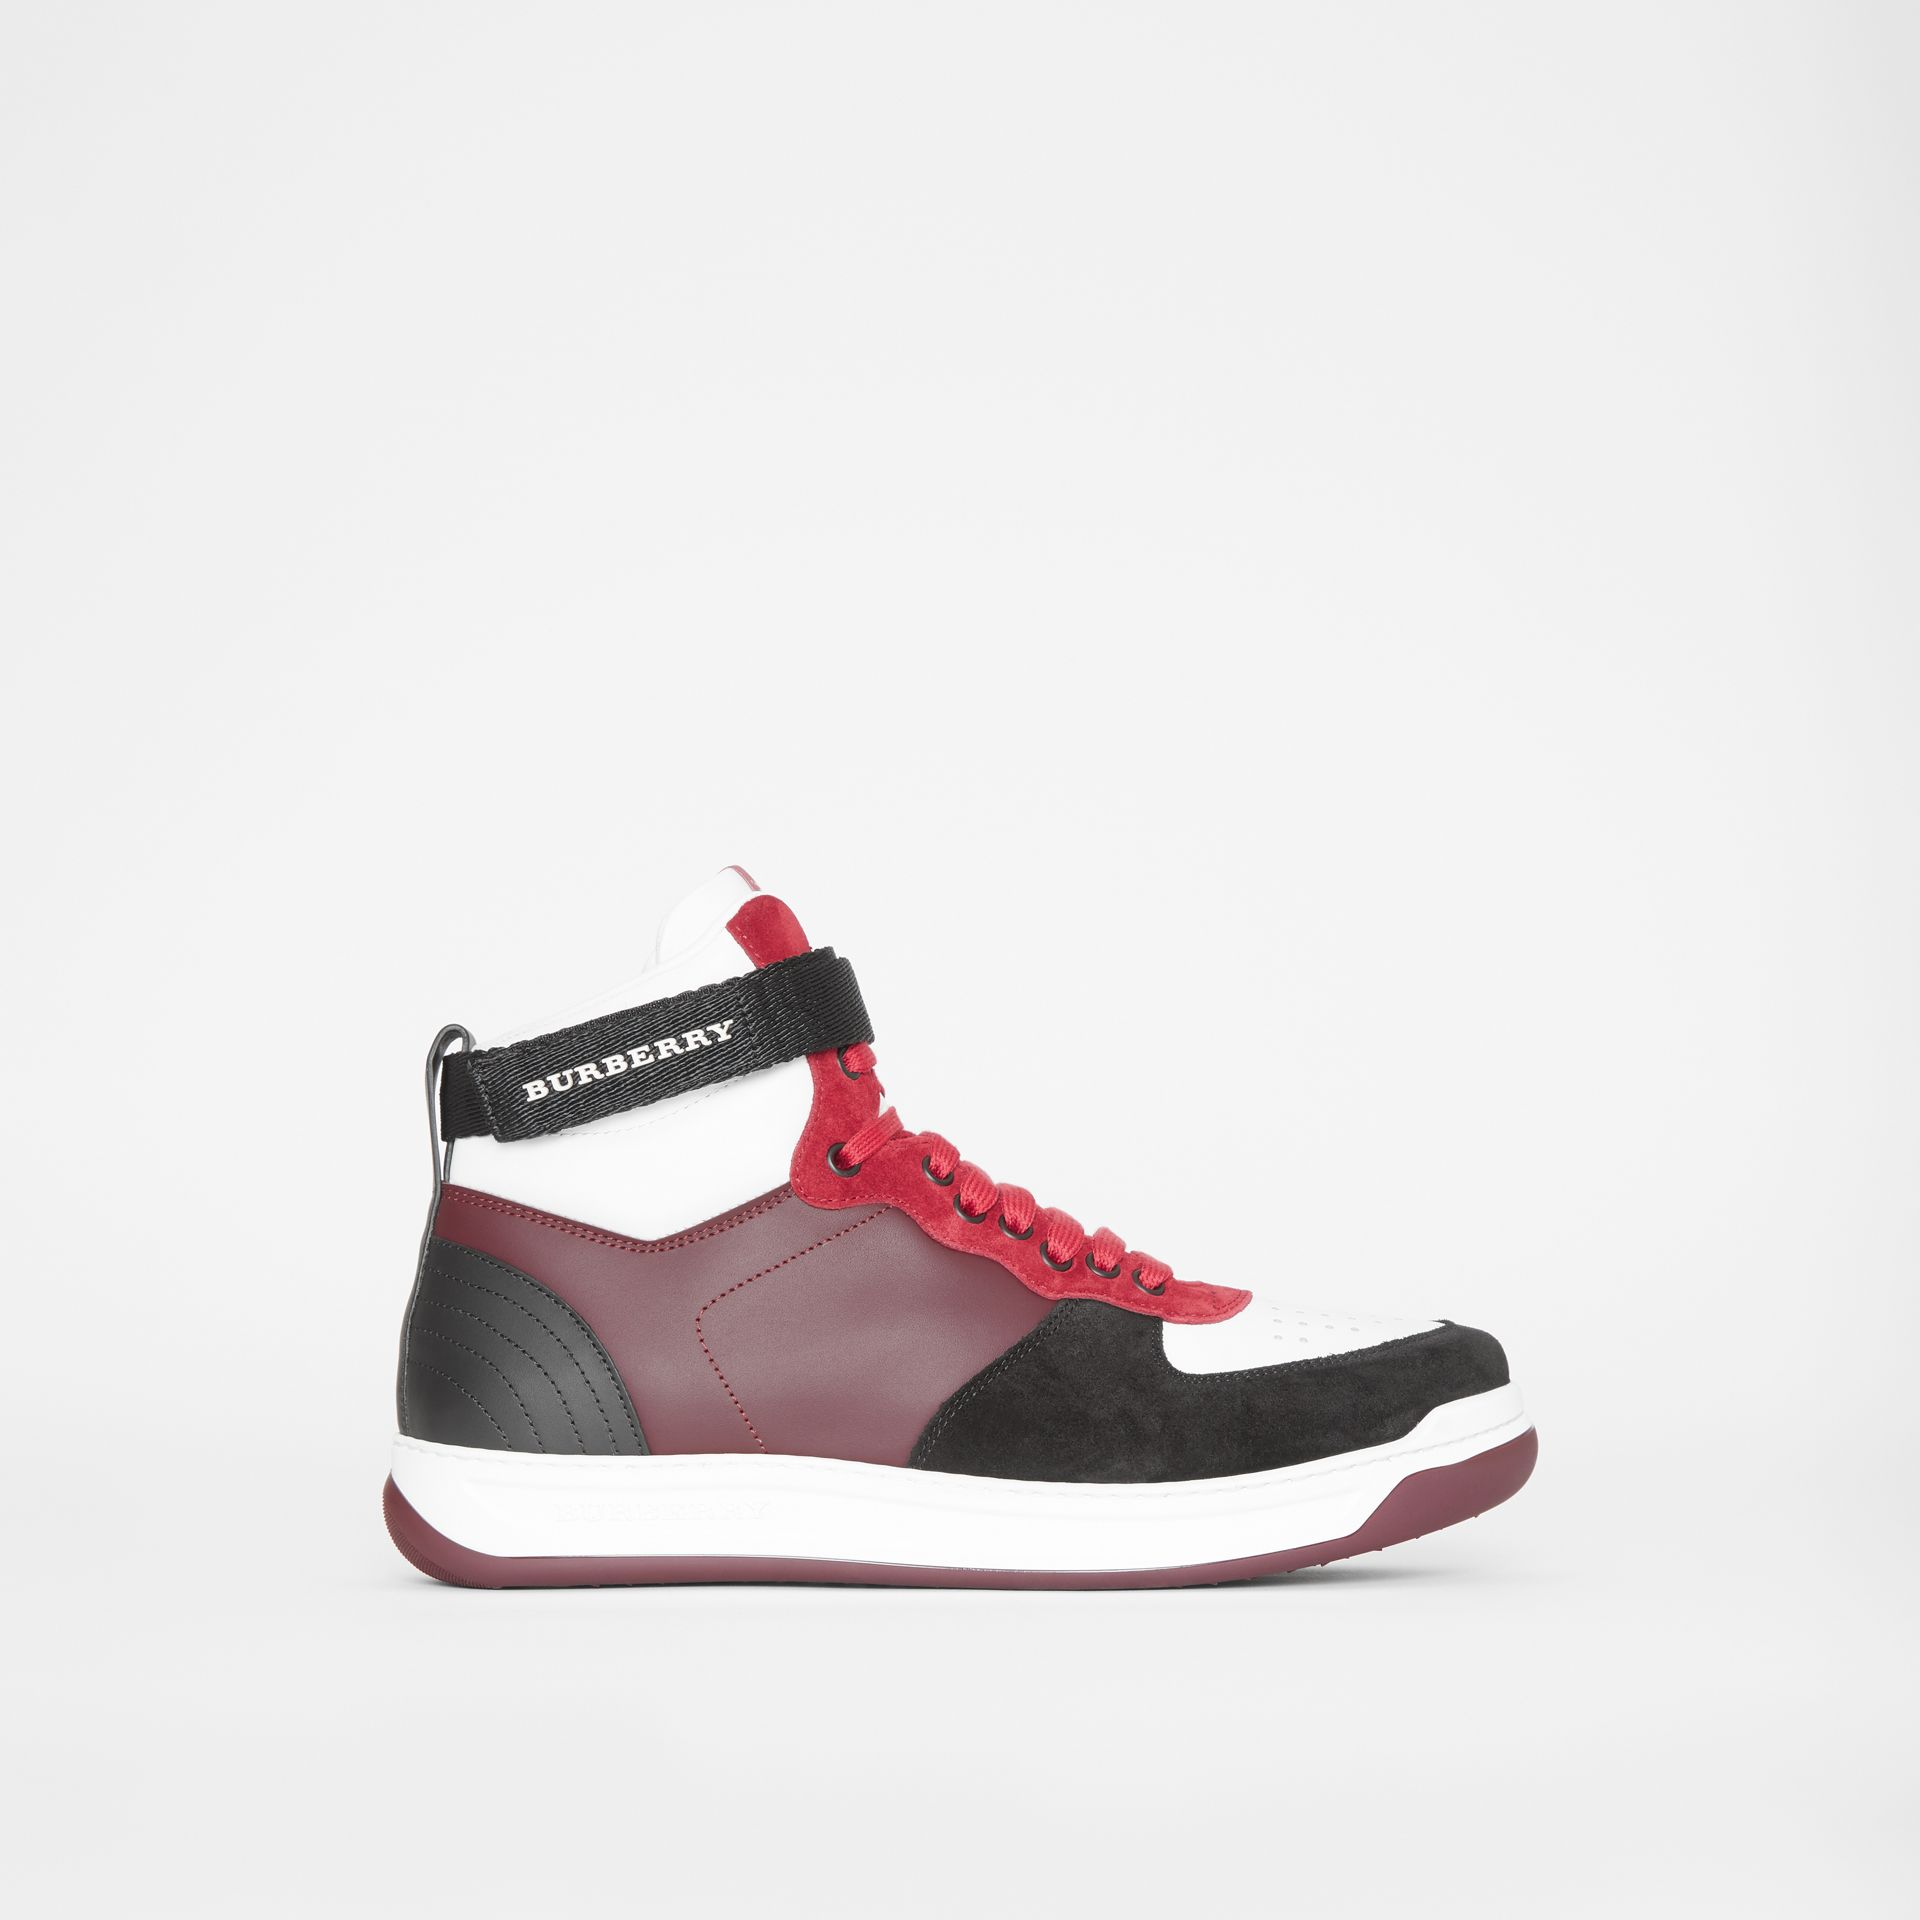 Leather and Suede High-top Sneakers in Burgundy Red - Men | Burberry - gallery image 5